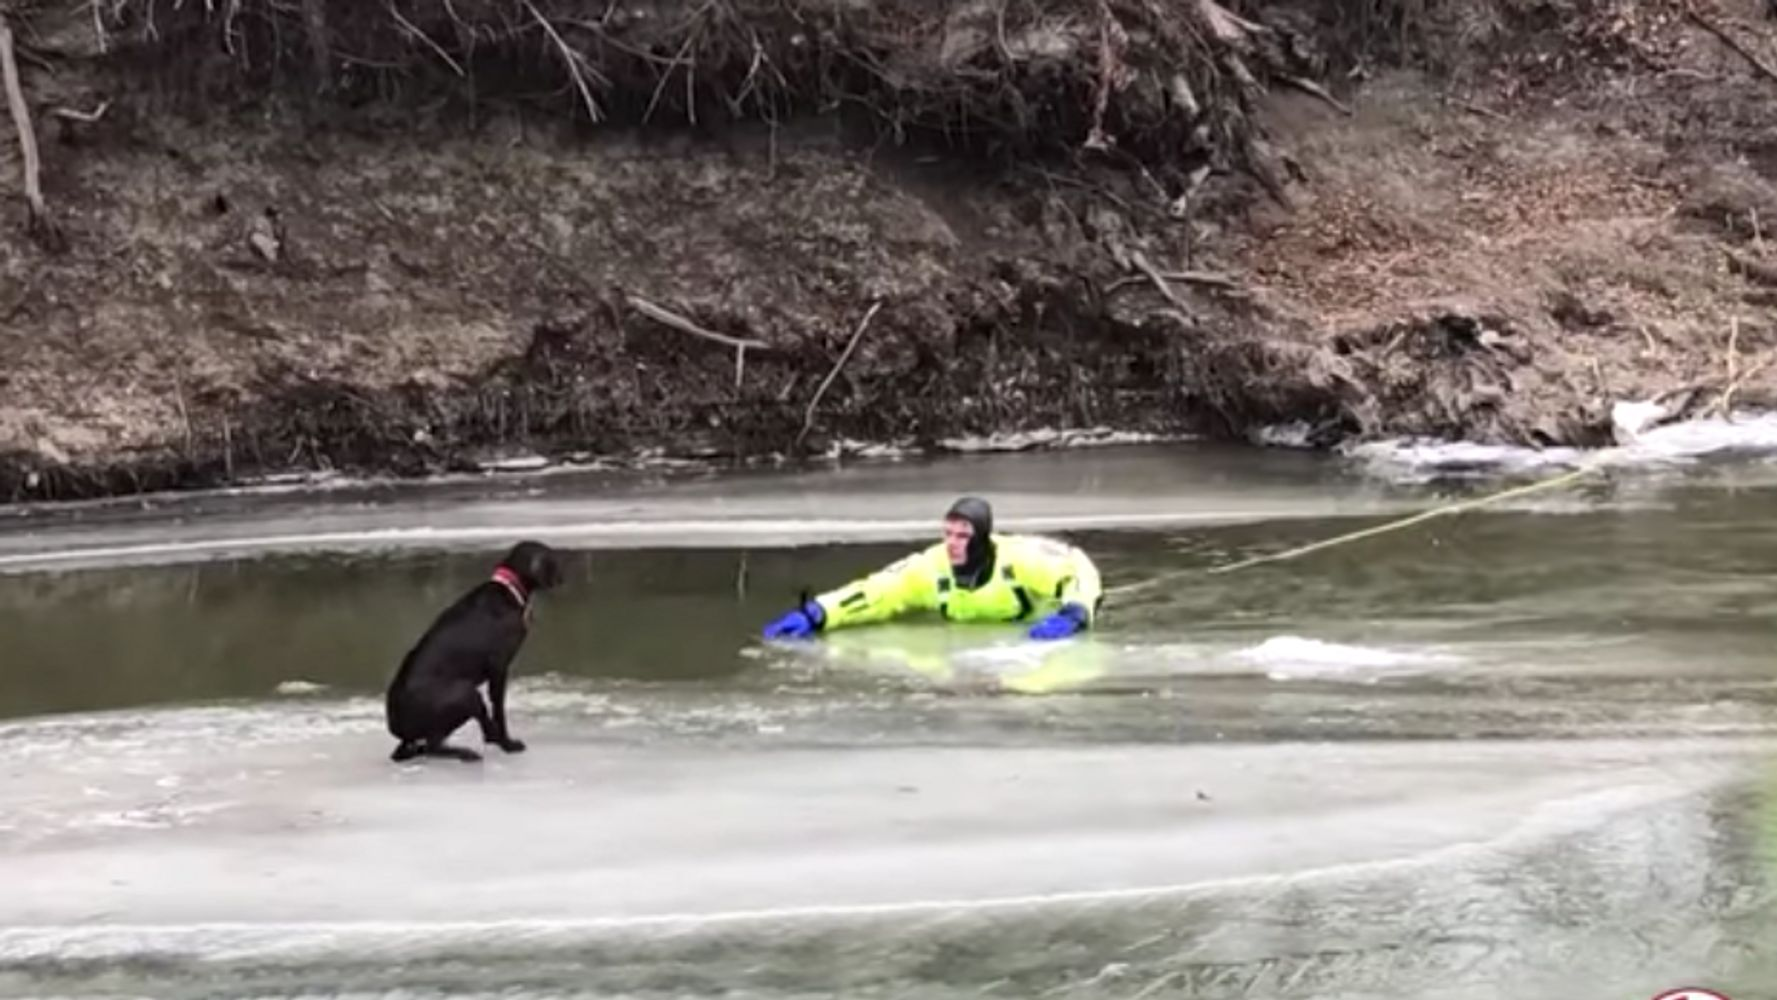 Watch First Responders Rescue Frightened Dog Stranded On A Chunk Of Ice